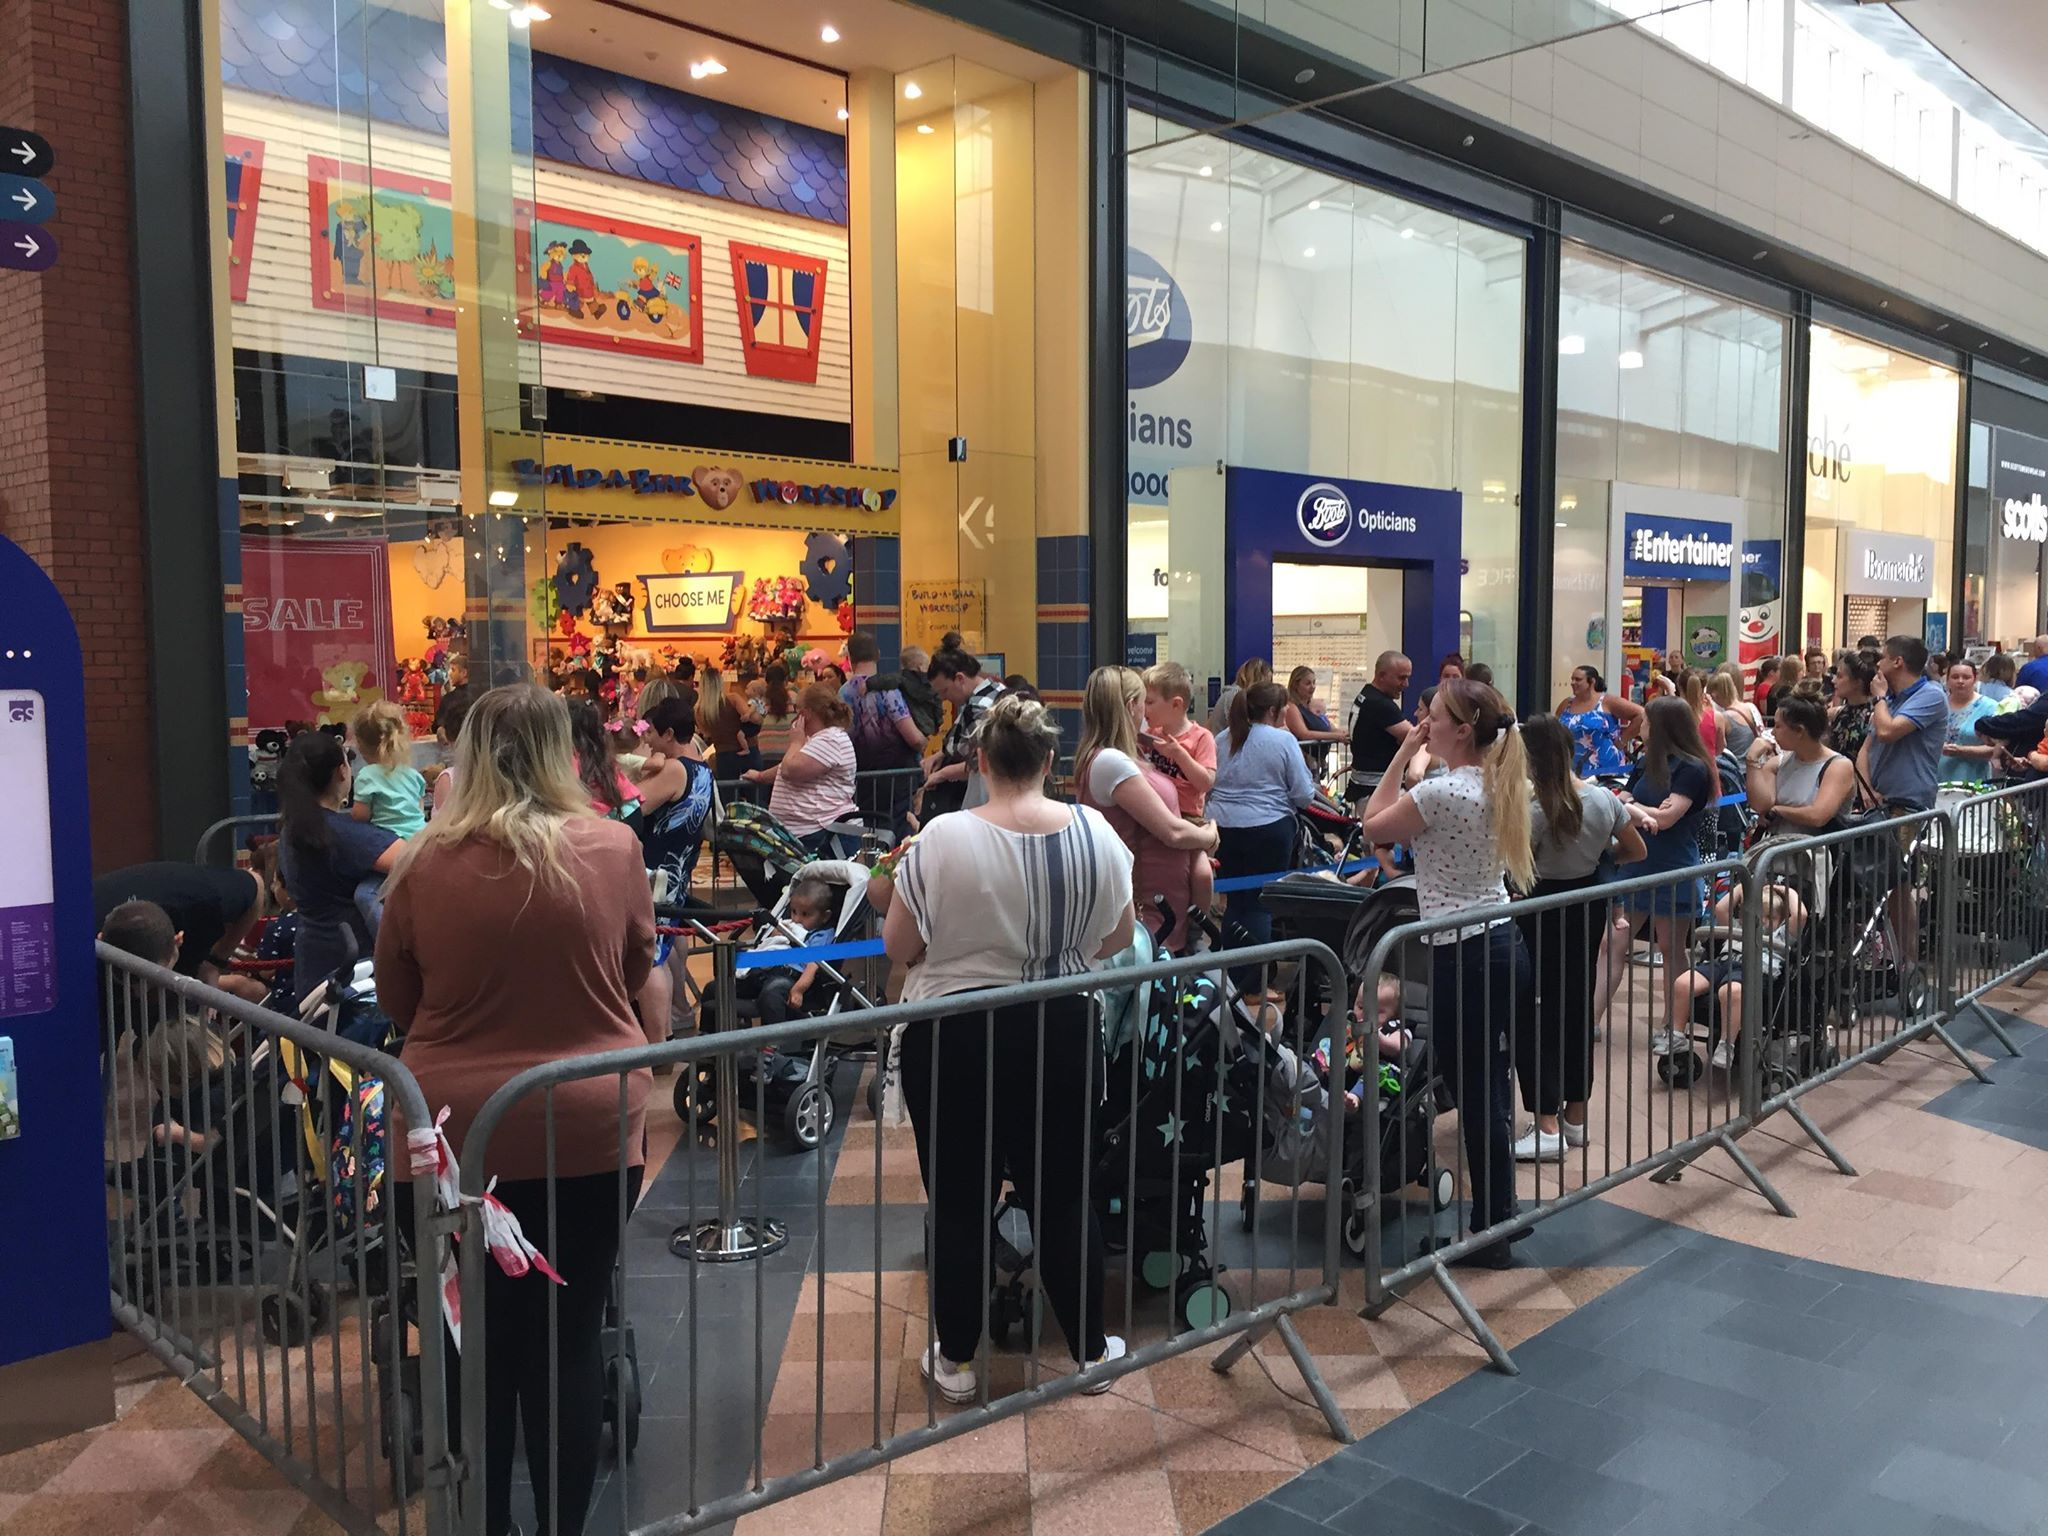 Build-A-Bear event forces closure of lines due to safety concerns